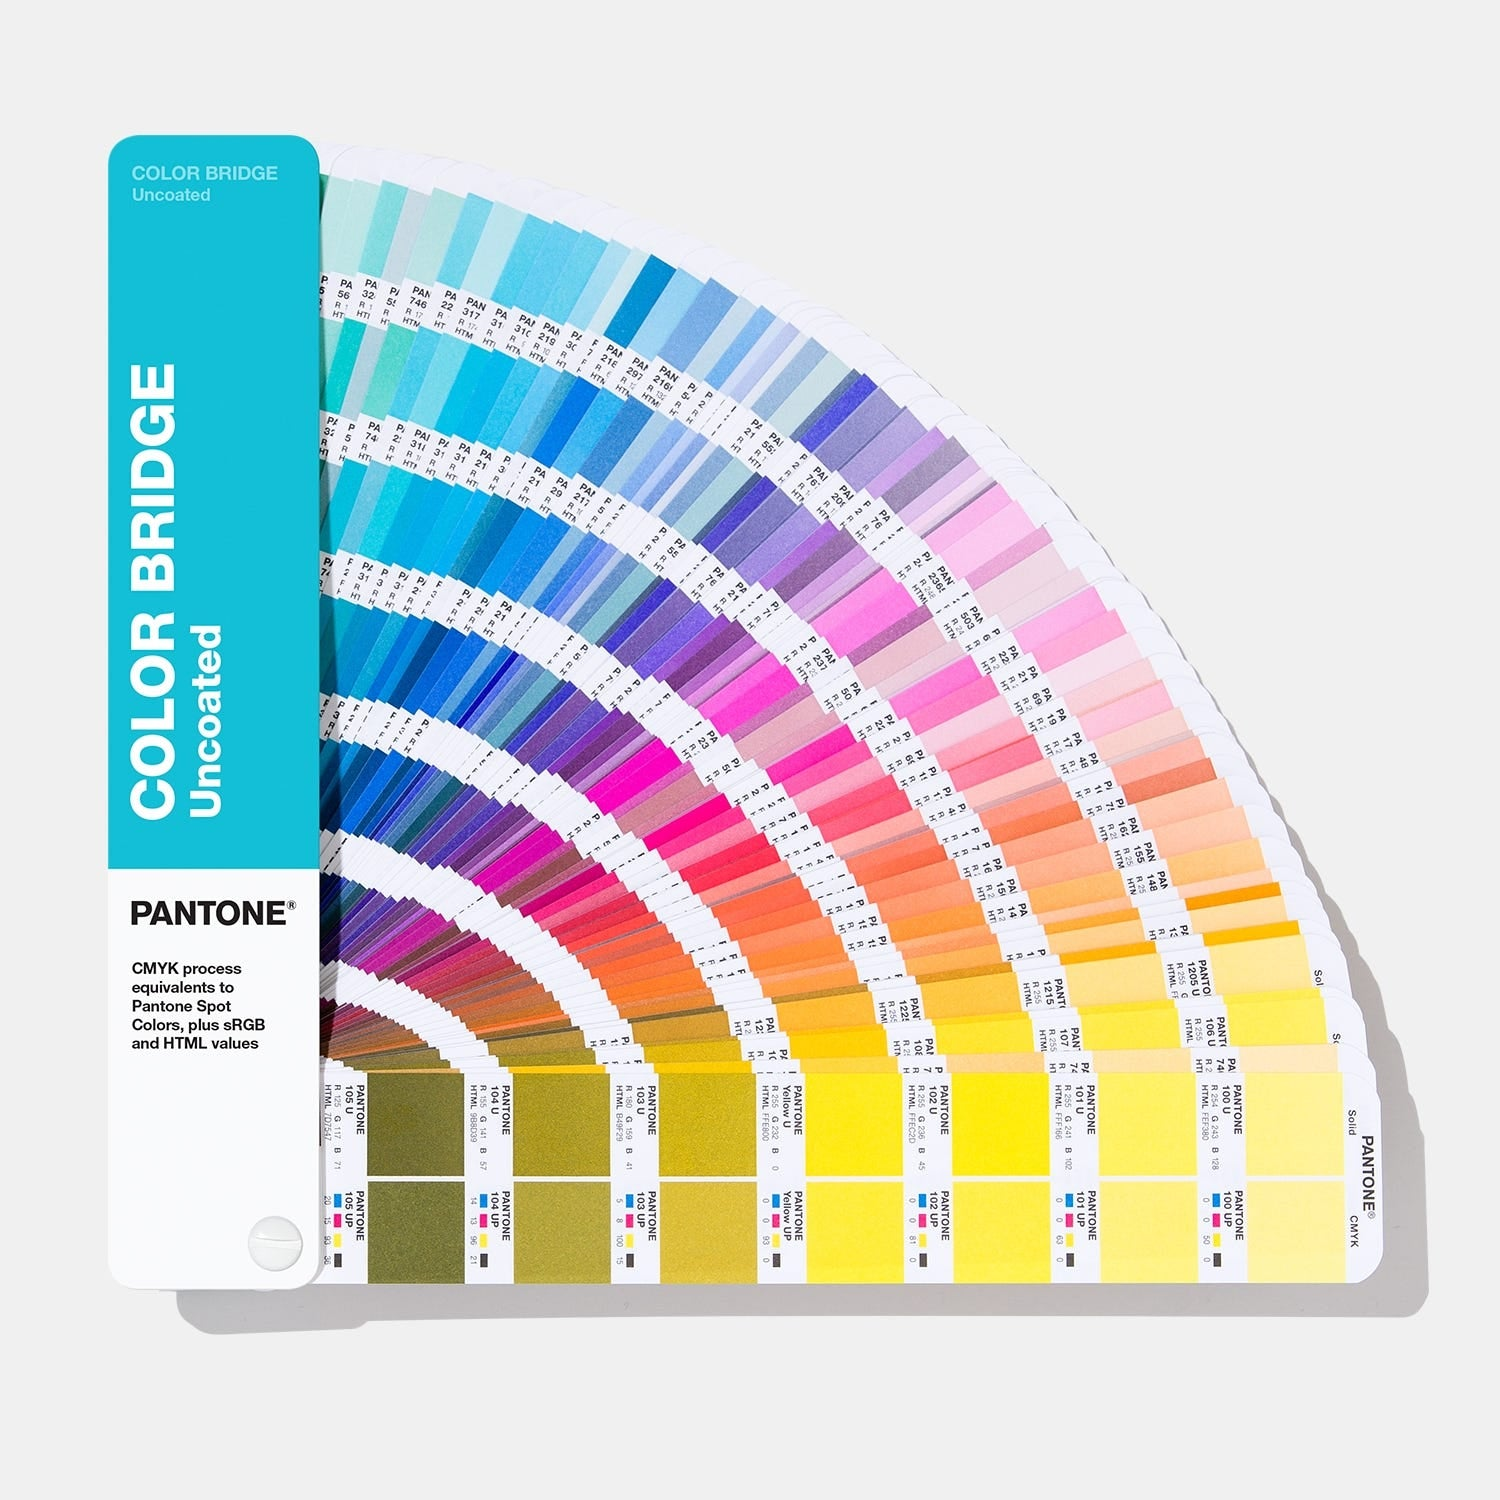 Pantone Uncoated Color Bridge